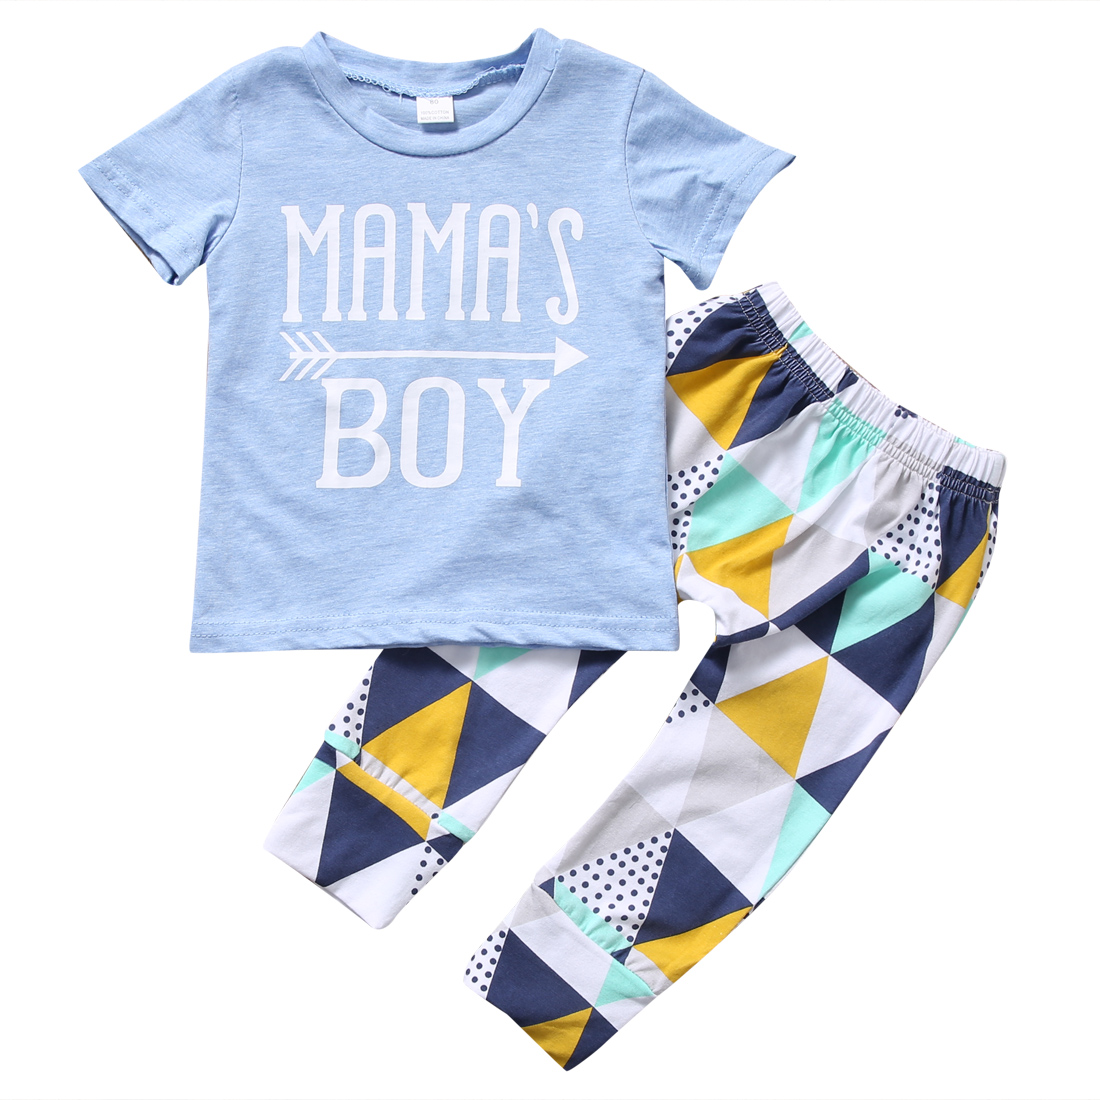 2017 Newborn Baby Boy Clothes Summer Short Sleeve Mama's Boy Cotton T-shirt Tops Pant 2PCS Outfit Toddler Kids Clothing Set toddler kids baby girls clothing cotton t shirt tops short sleeve pants 2pcs outfit clothes set girl tracksuit